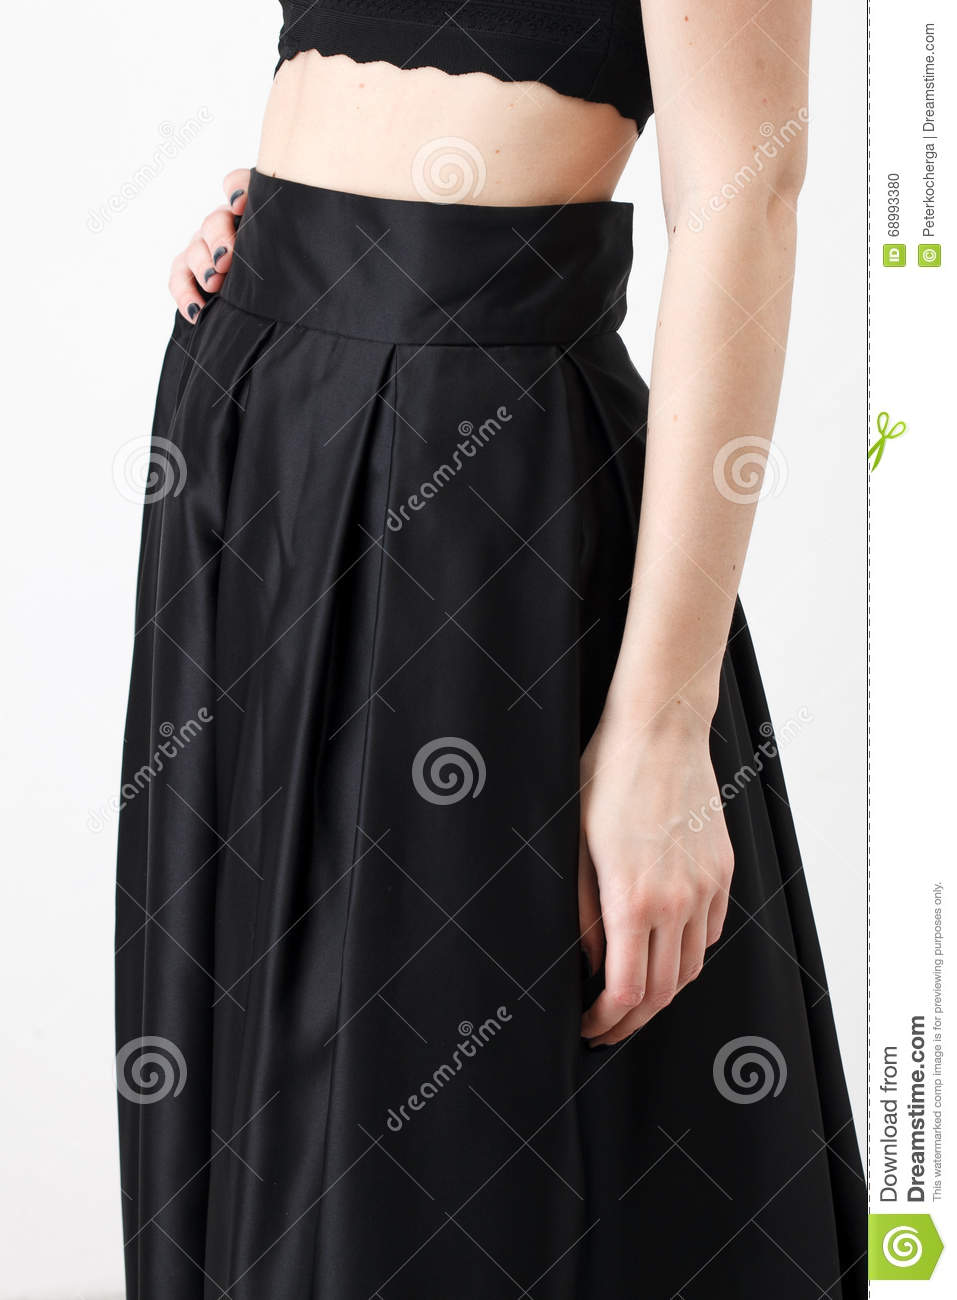 5b12935602 Fashionista In Black Shirt And Skirt Stock Photo - Image of clothing ...